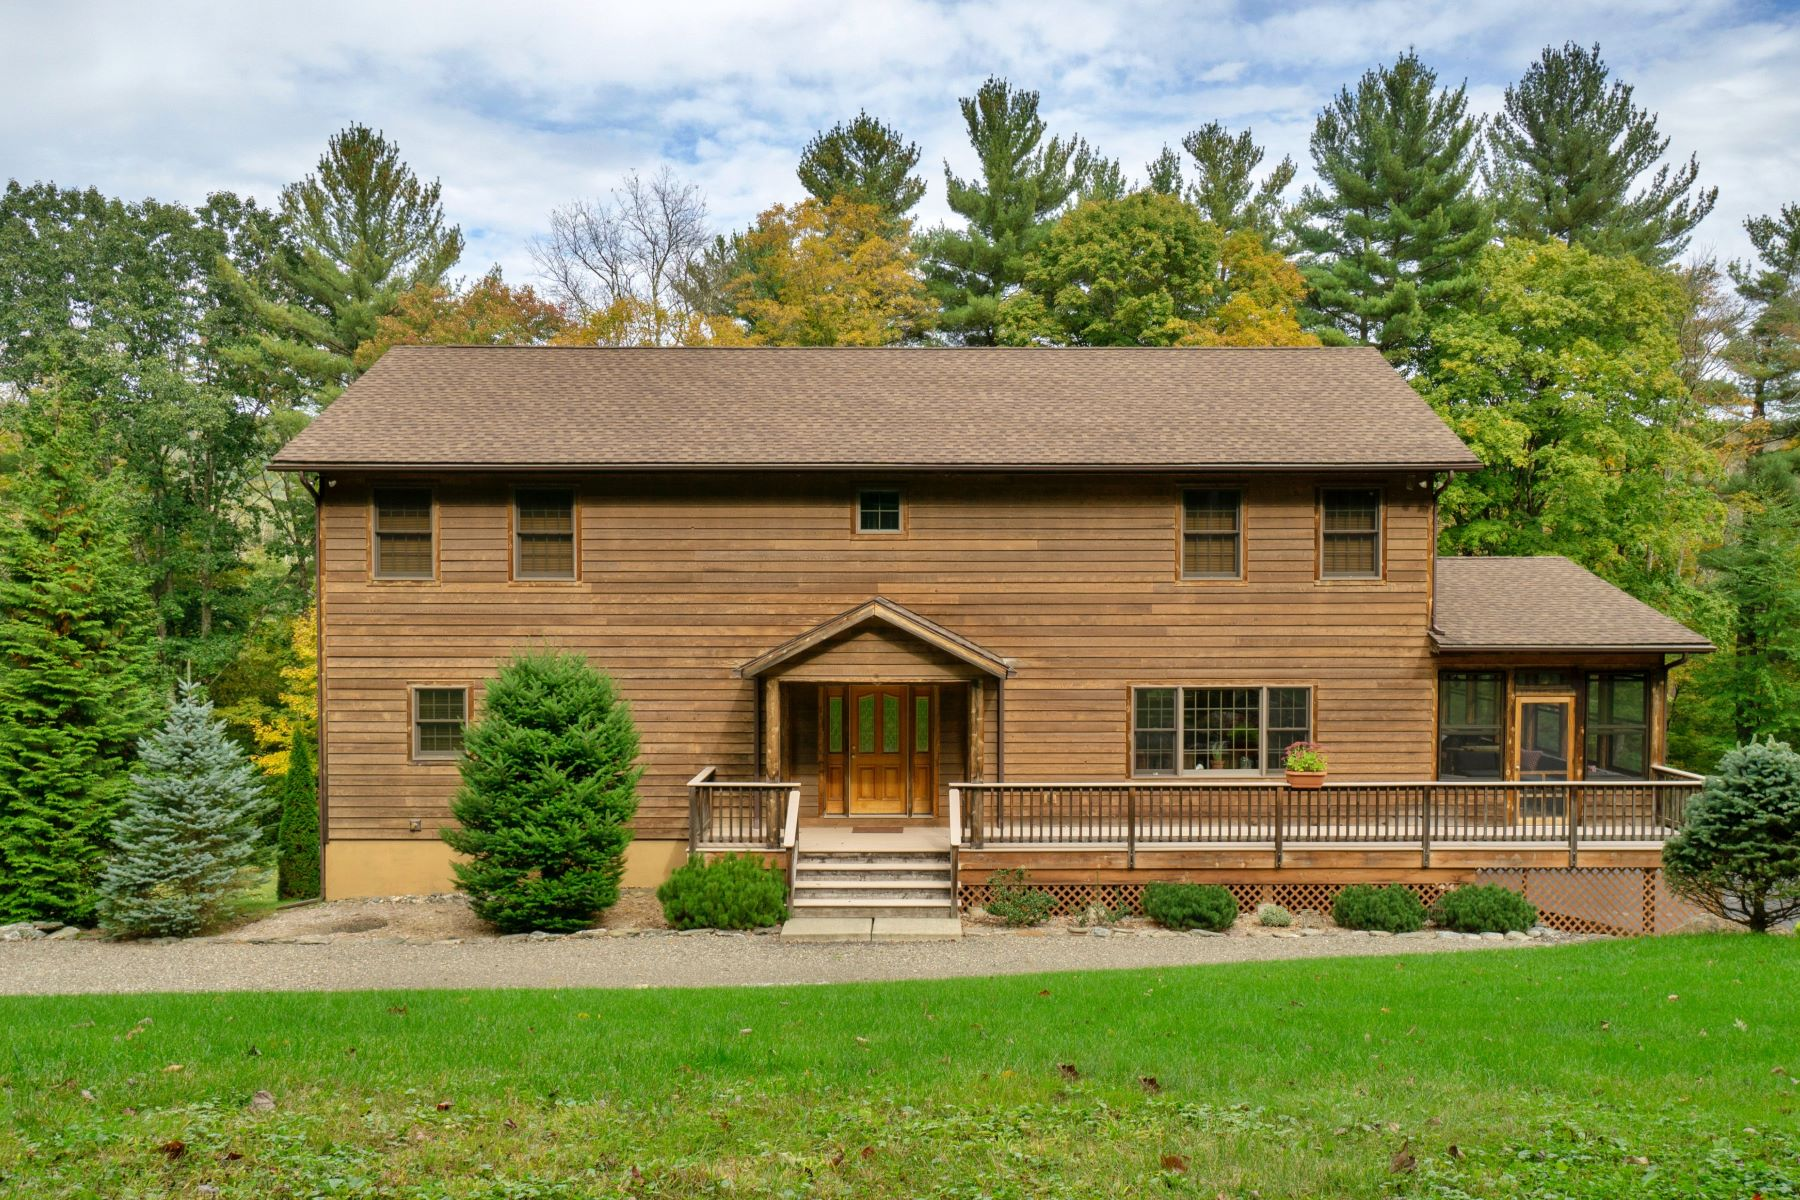 Single Family Homes for Sale at Country Get-Away on the Green River 151 Stagecoach Rd Hillsdale, New York 12529 United States